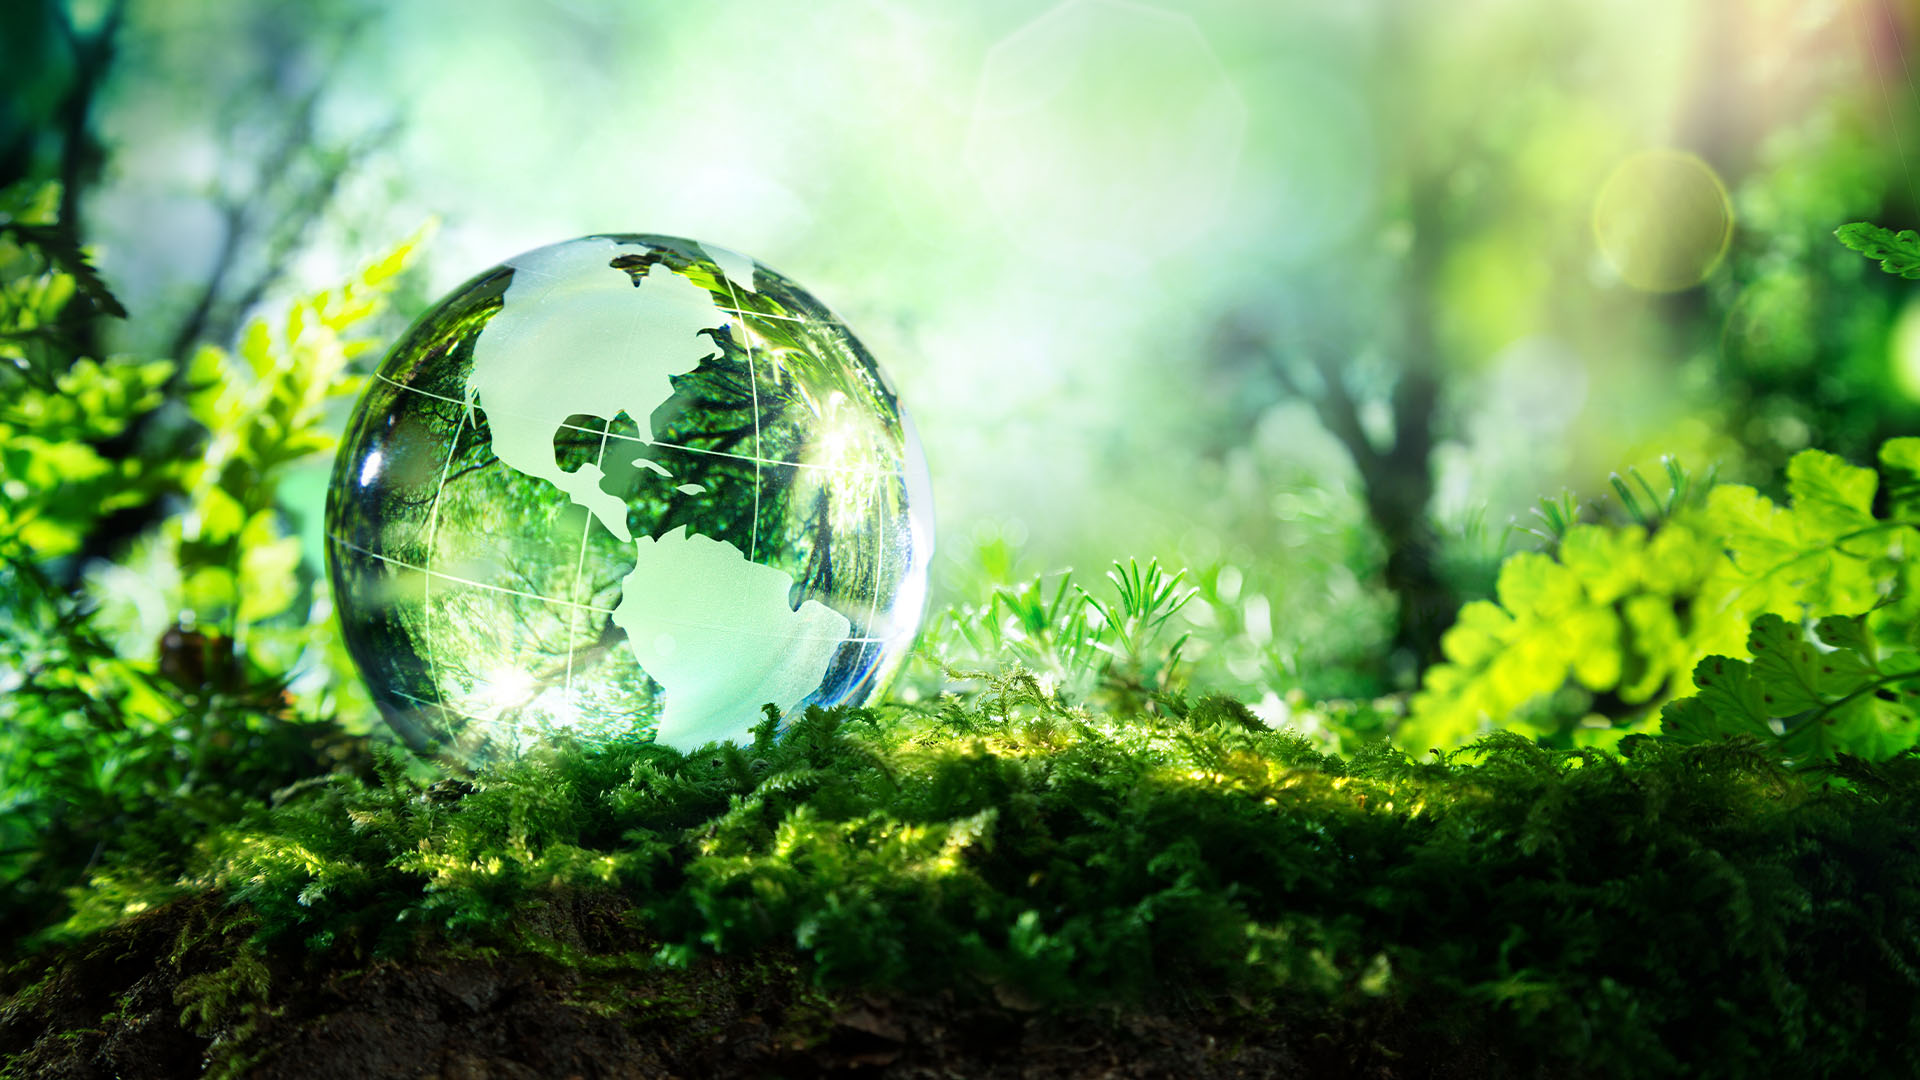 The Global Climate Crisis and the action required